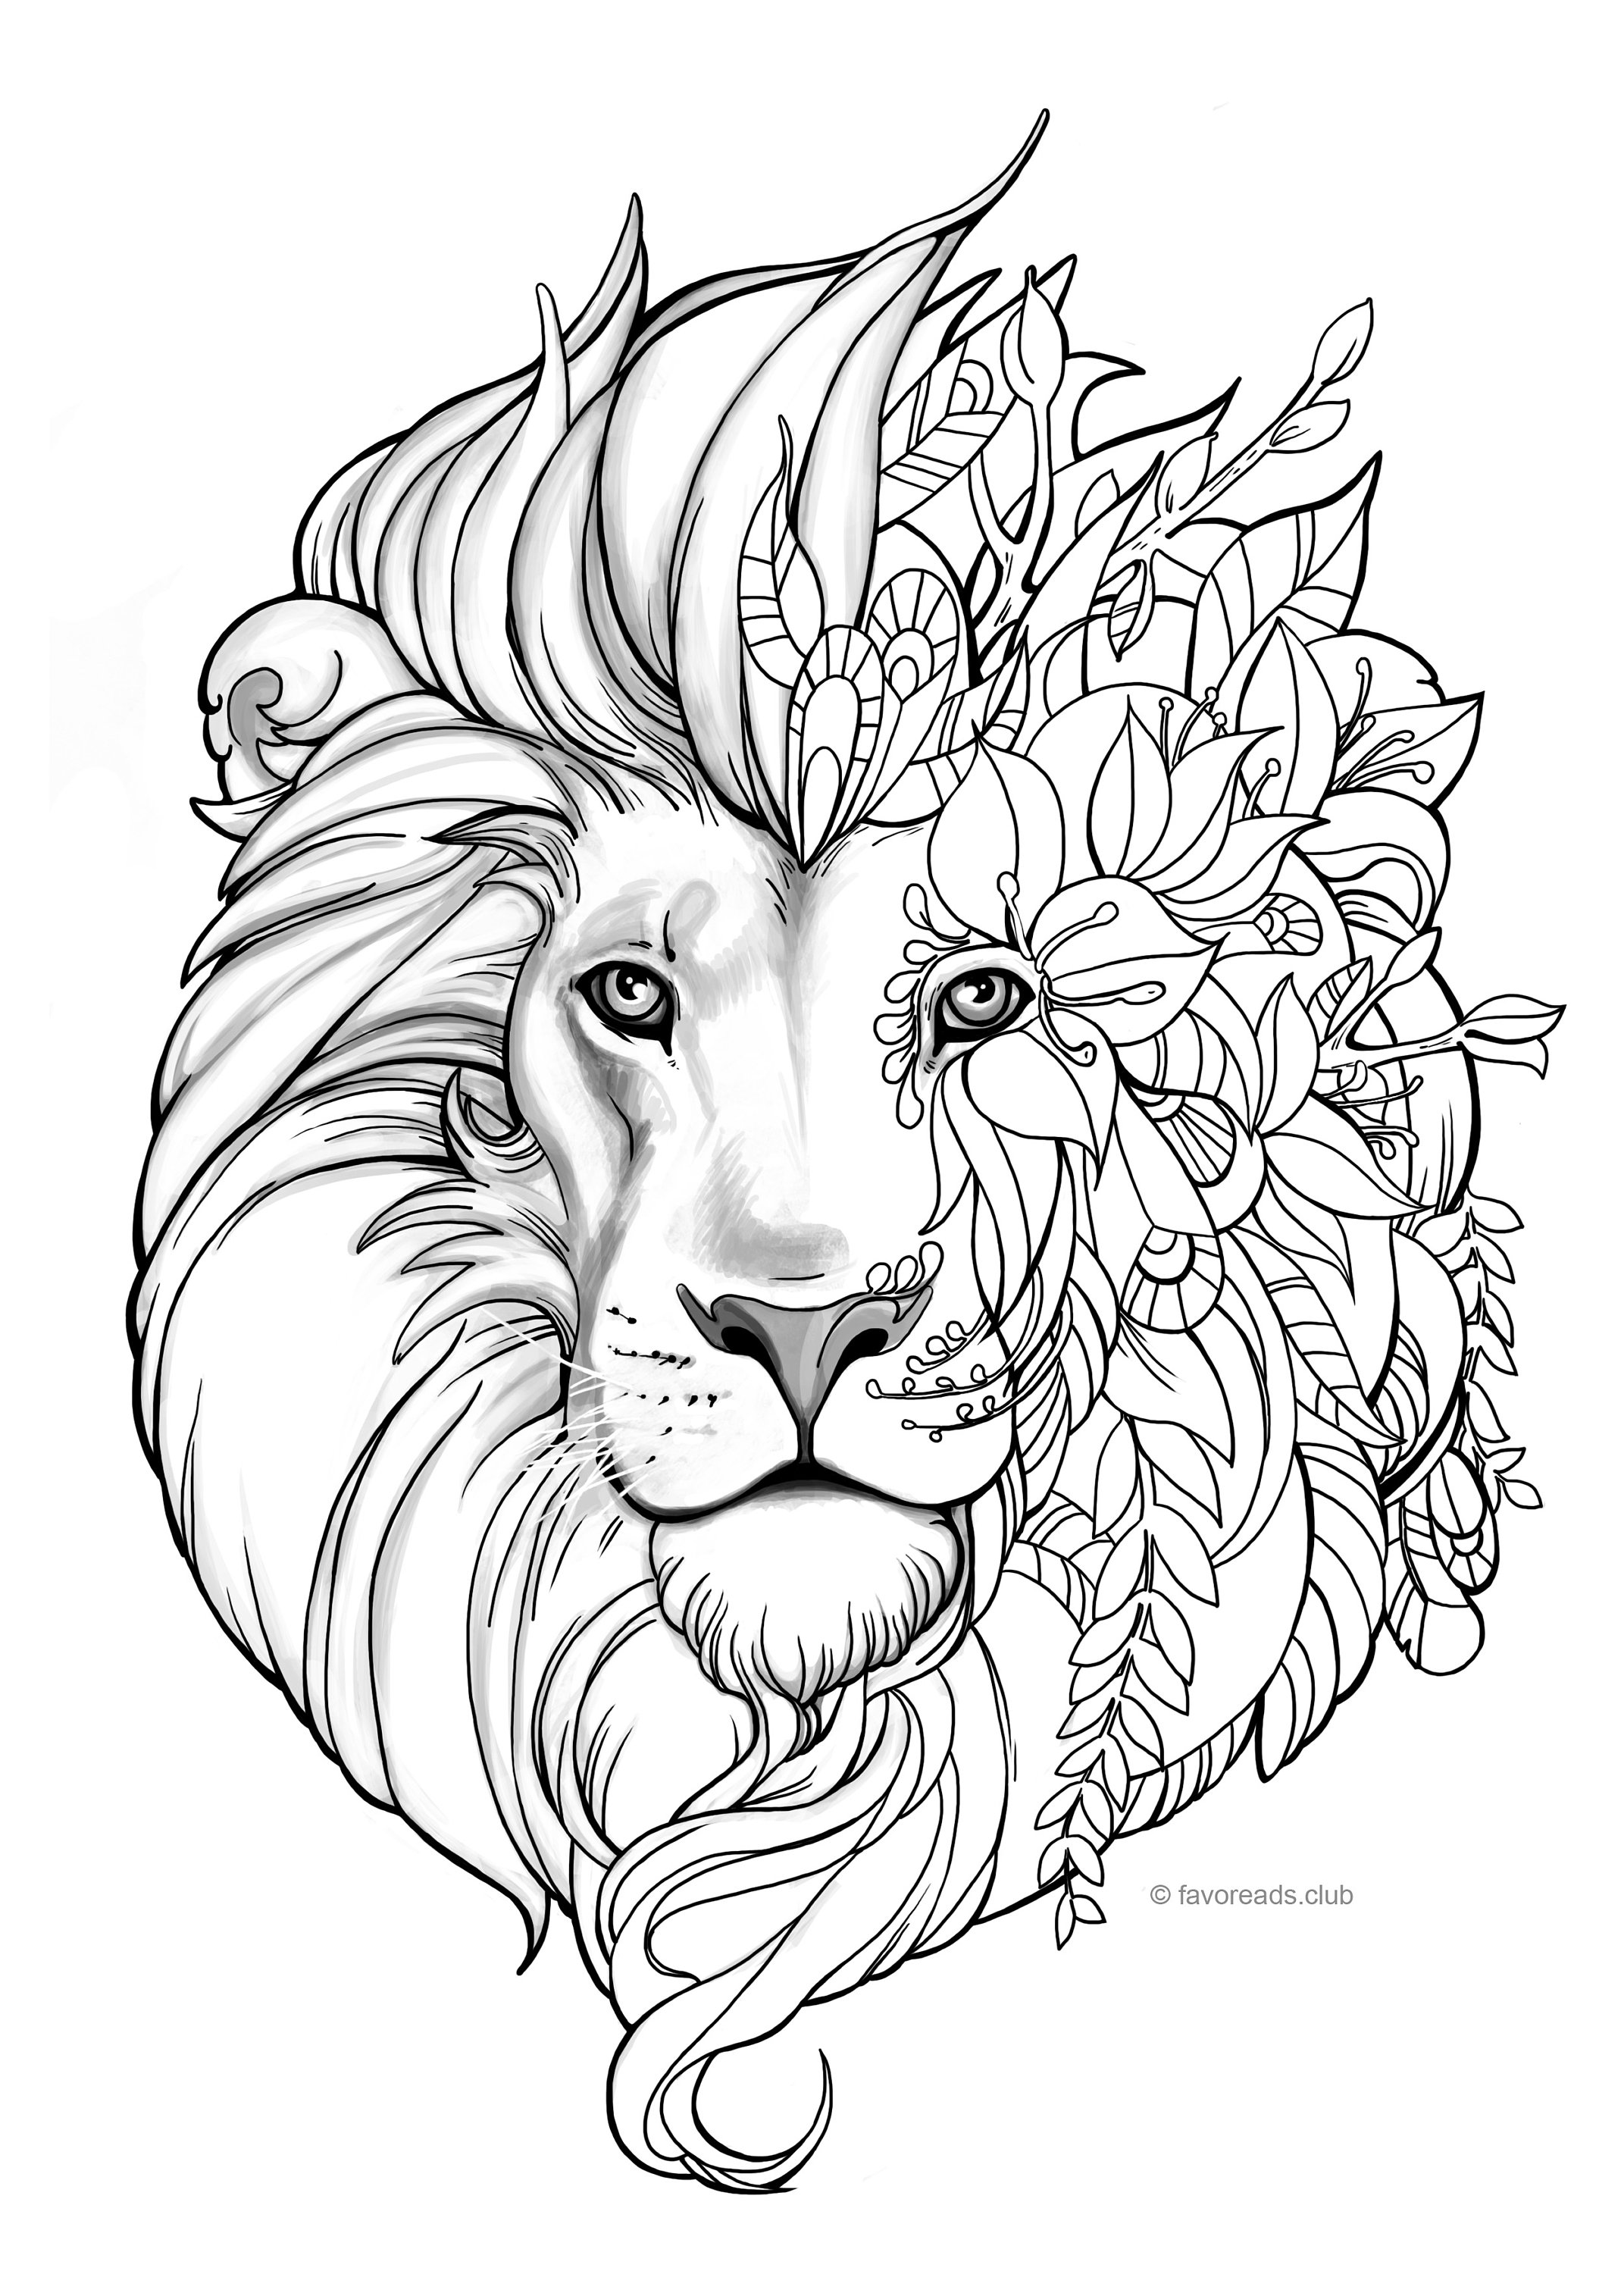 coloring pages of lion lion to print for free lion kids coloring pages coloring lion pages of